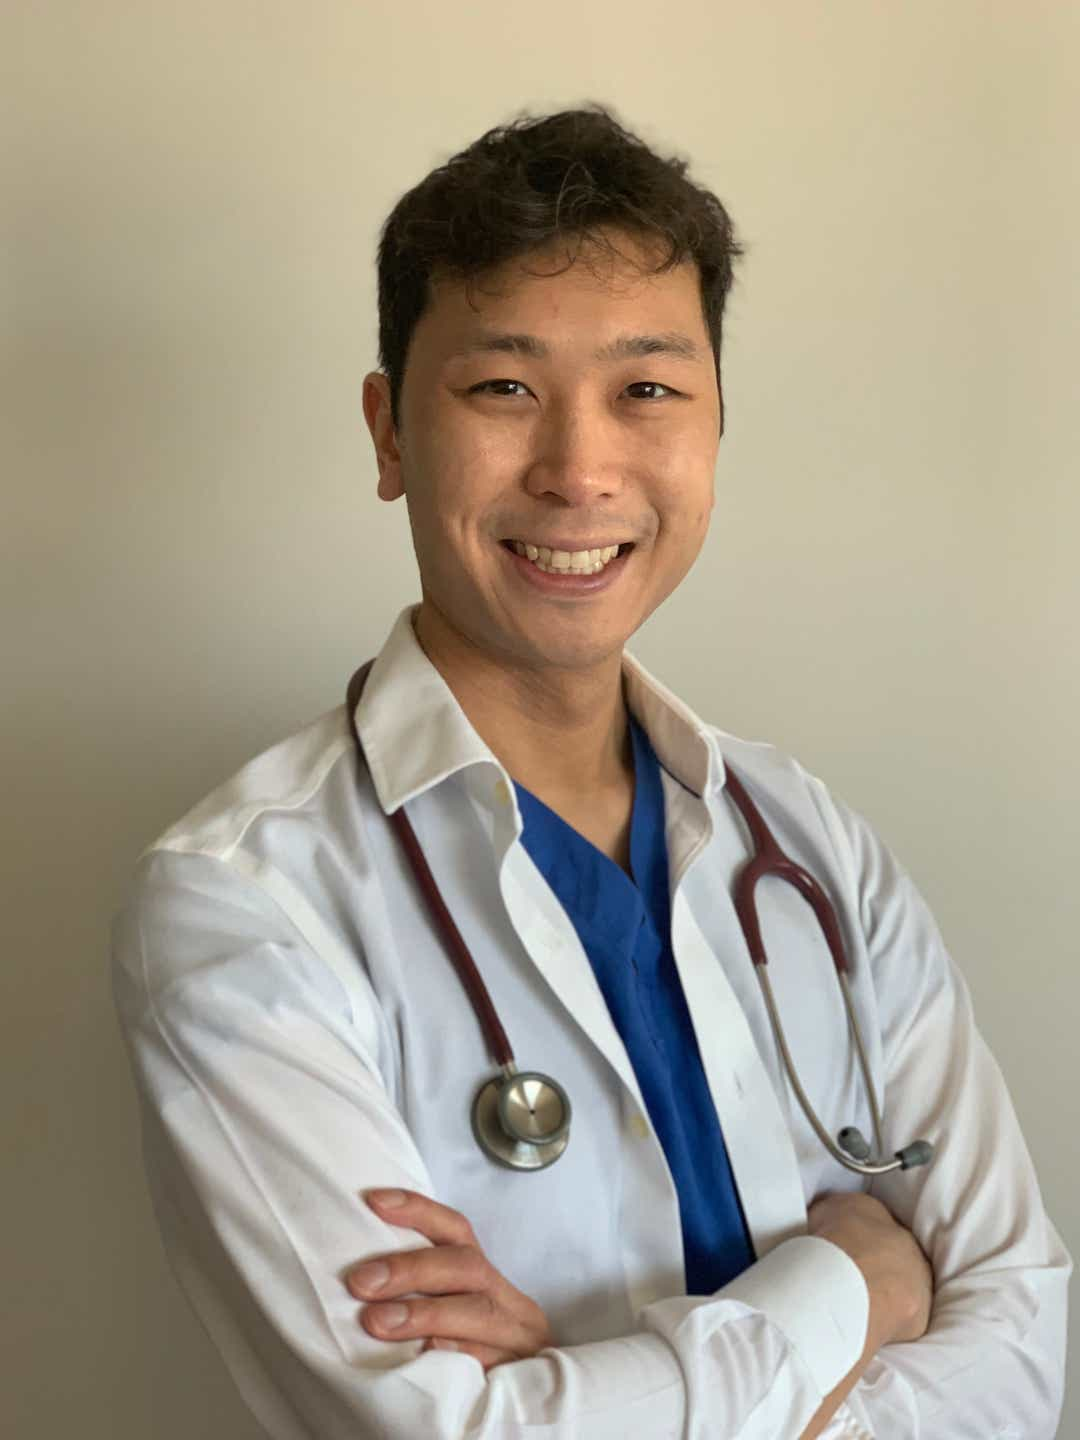 359a445d 549d 467c a448 8be019b260a9 Thomas Ken Lew - CORONAVIRUS (COVID-19) CoronaVirus Covid-19 CoronaVirus Treatment coronavirus vaccine Young doctor: I have coronavirus advice for people my age. Step back, stay healthy